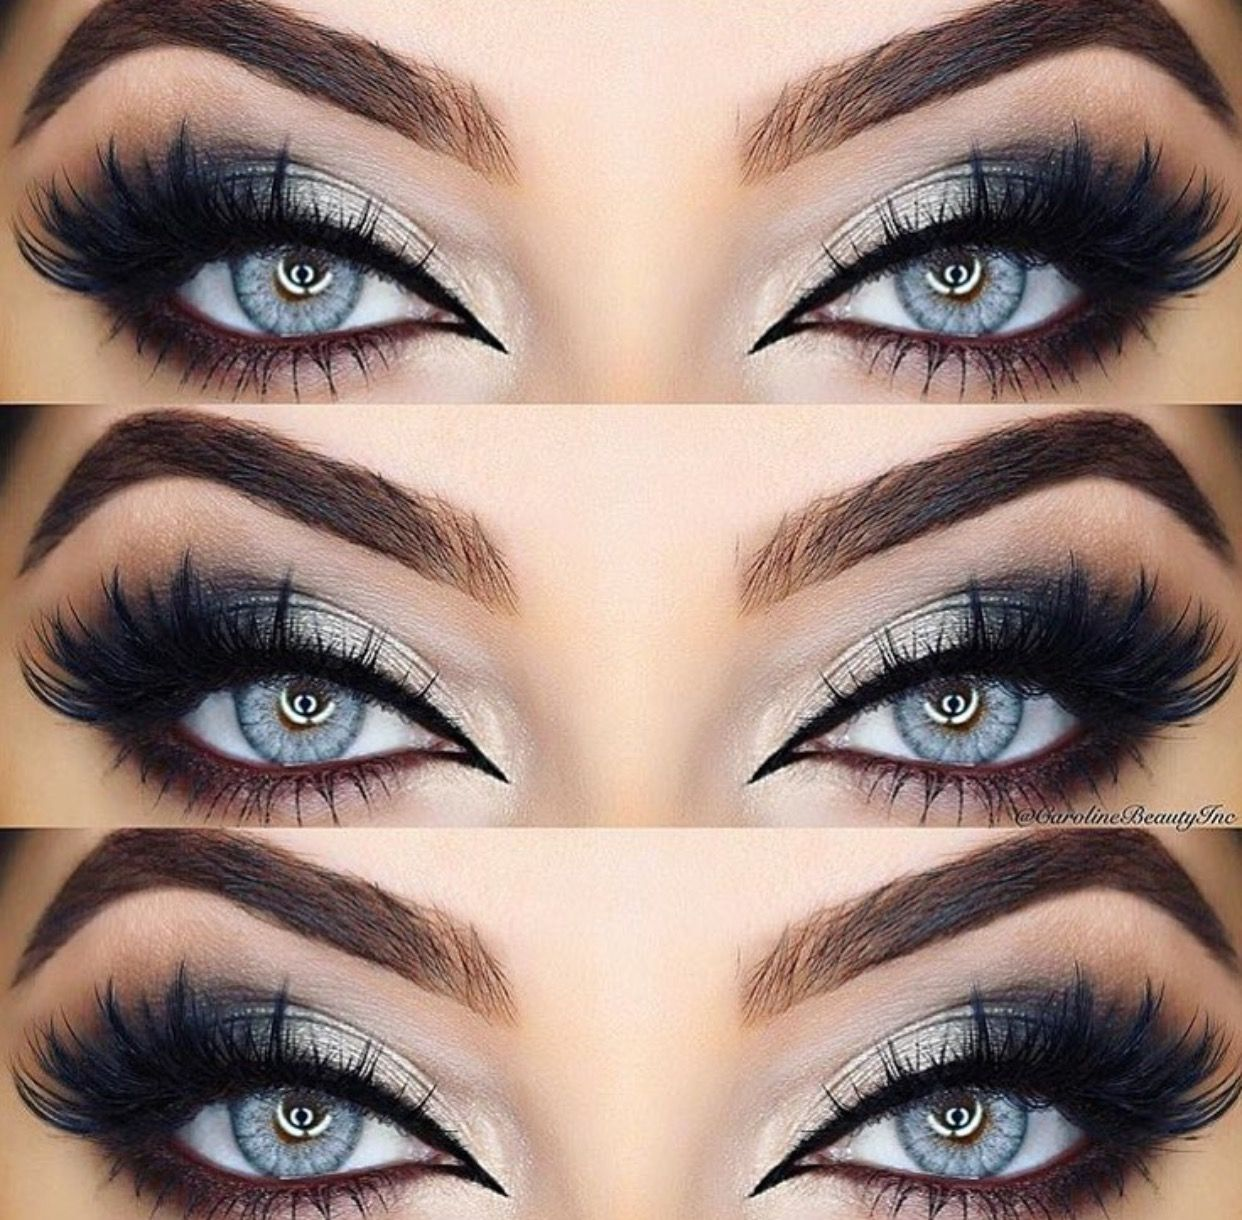 smokey eye for gray eyes. brows are flawless. no angry bird